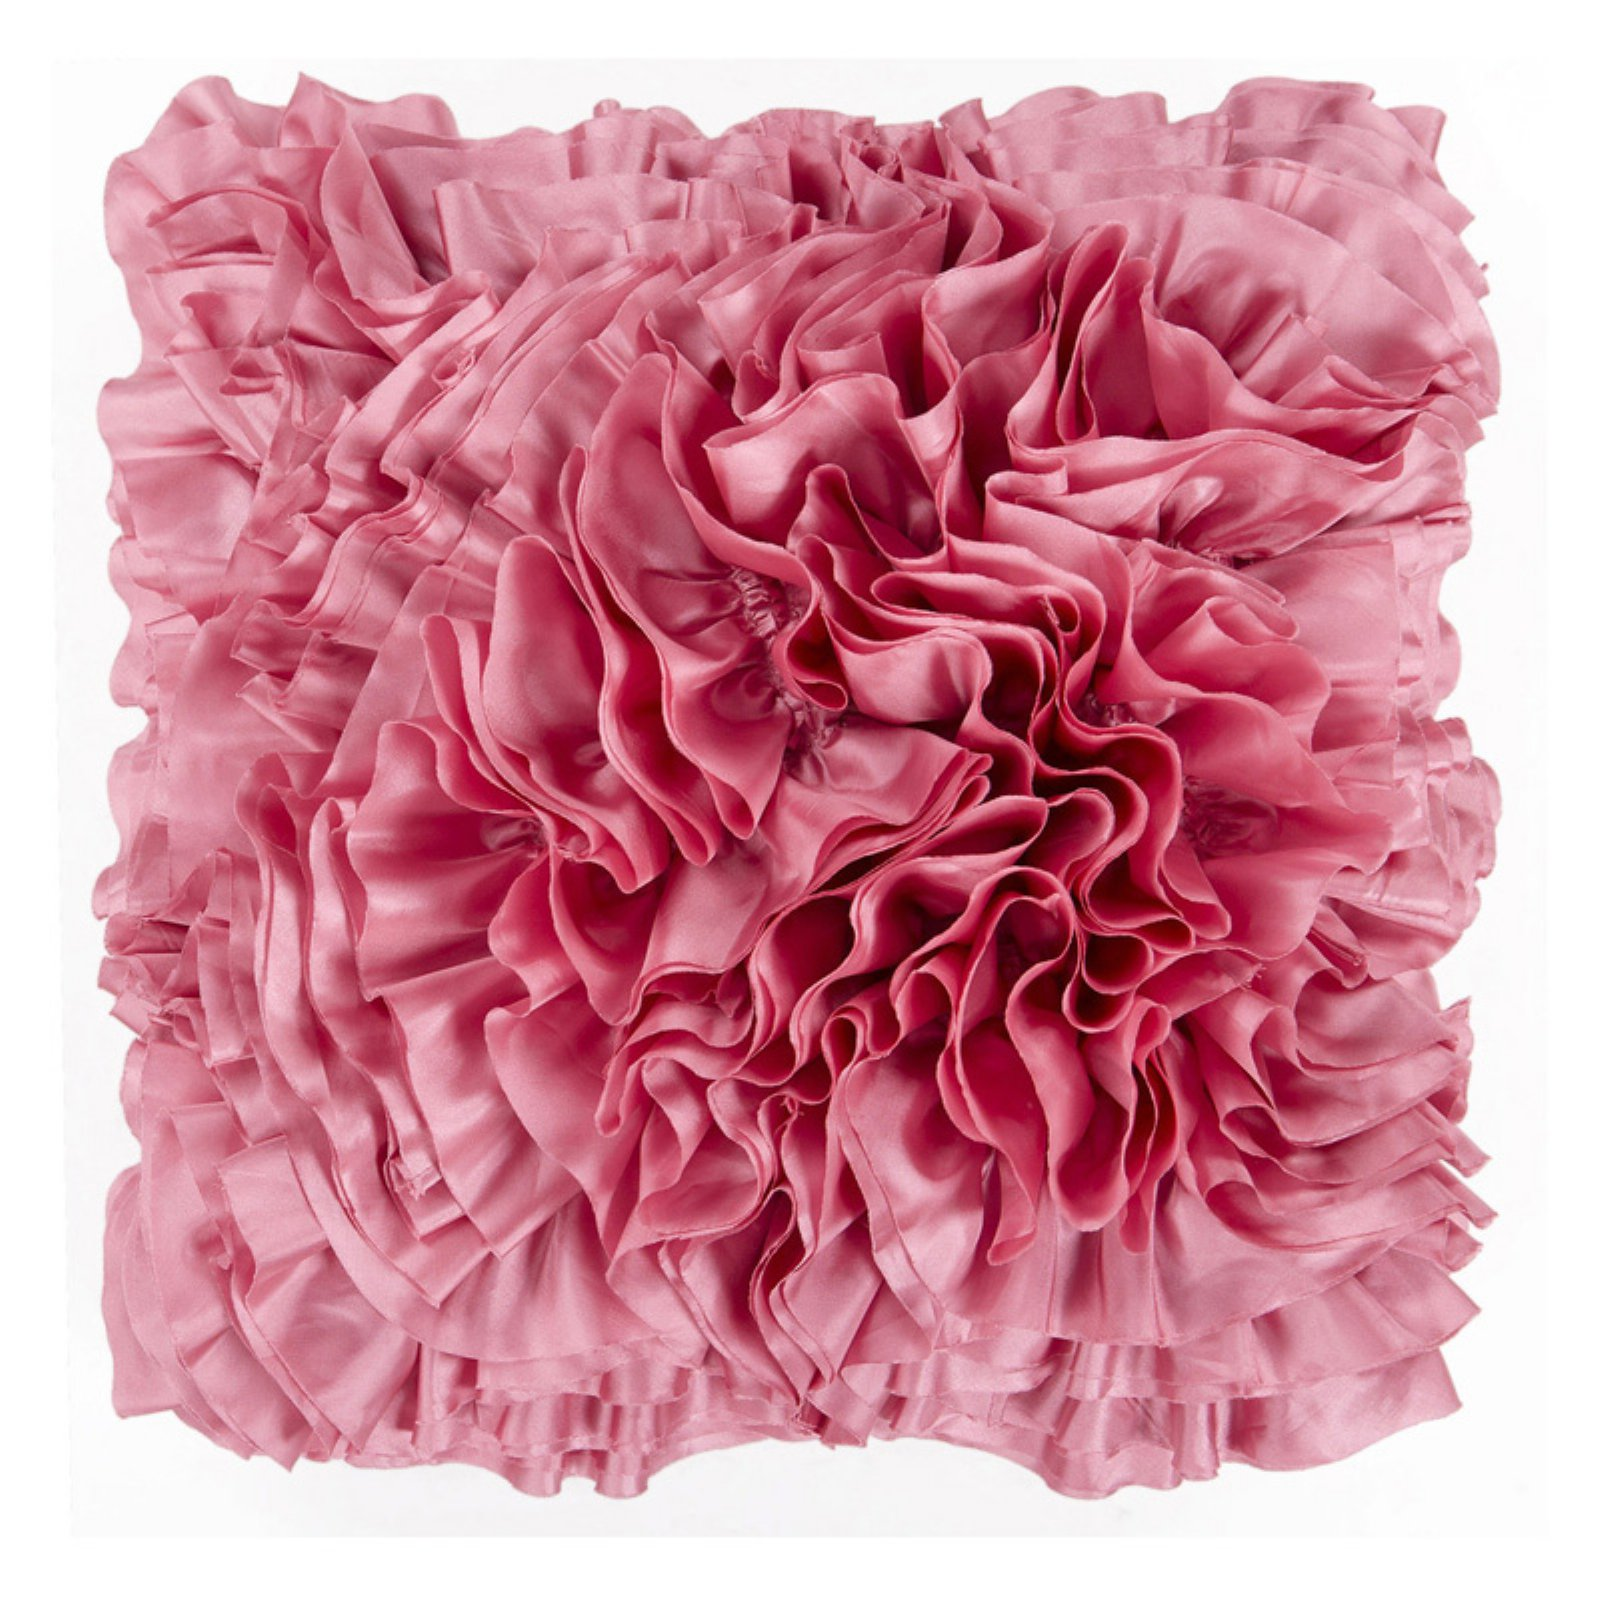 Surya Ruffles Decorative Pillow - Dusty Pink